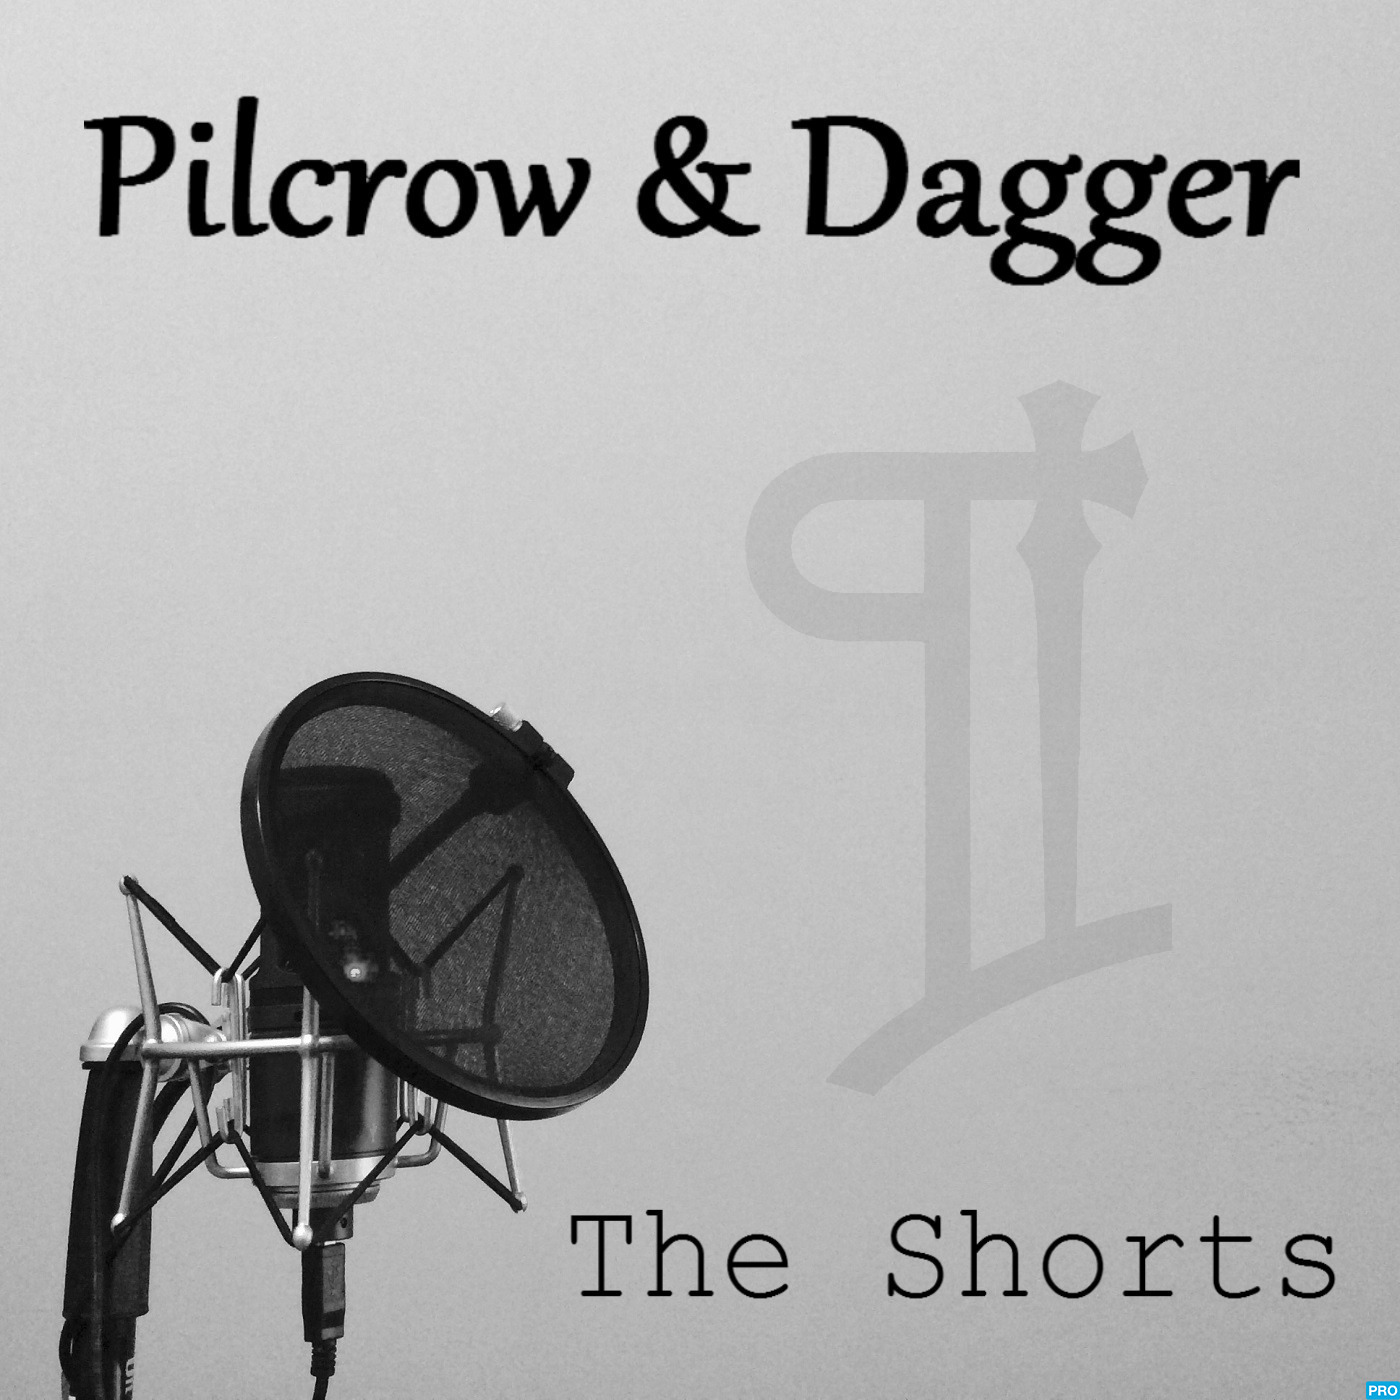 Pilcrow & Dagger: The Shorts